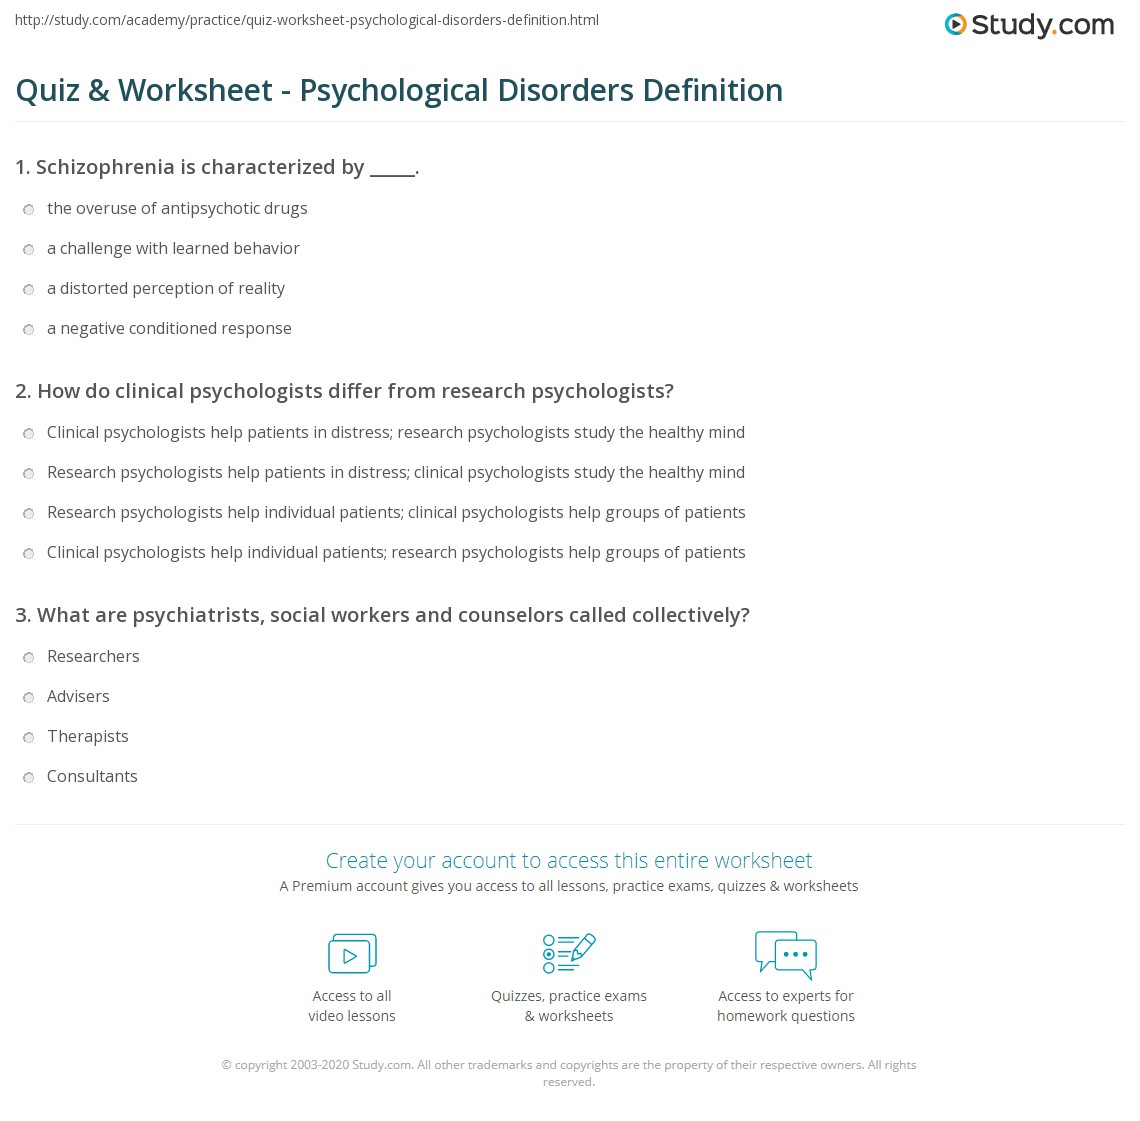 quiz worksheet psychological disorders definition. Black Bedroom Furniture Sets. Home Design Ideas